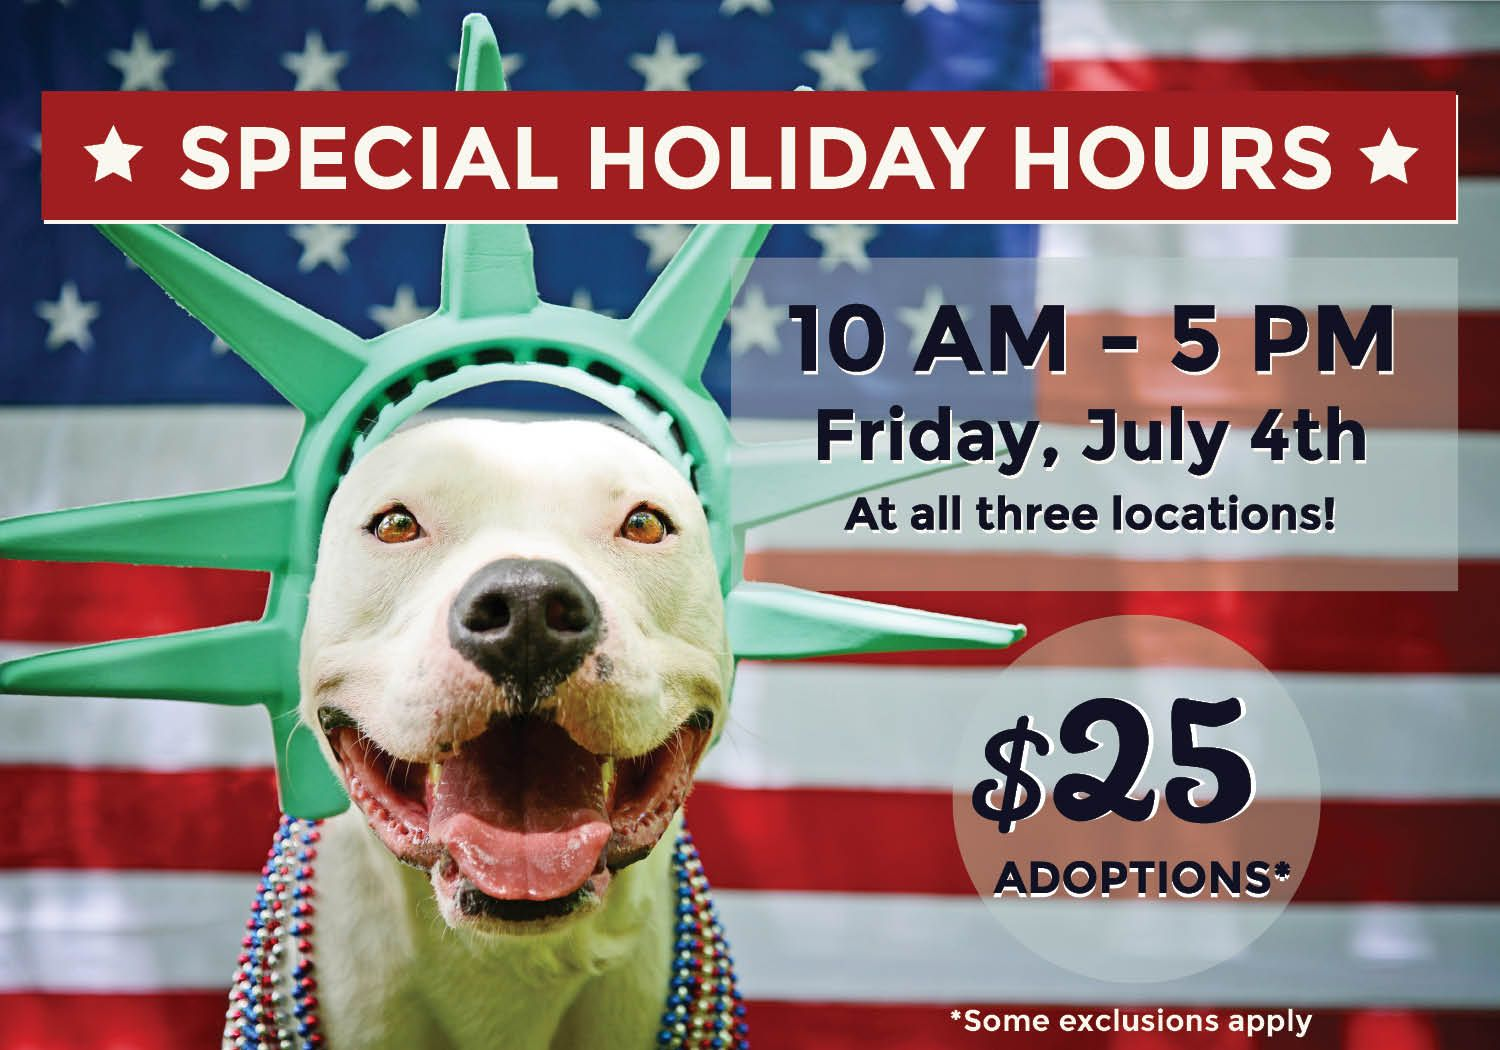 Now thru July 6th!! 25 adoptions at KC Pet Project! Some